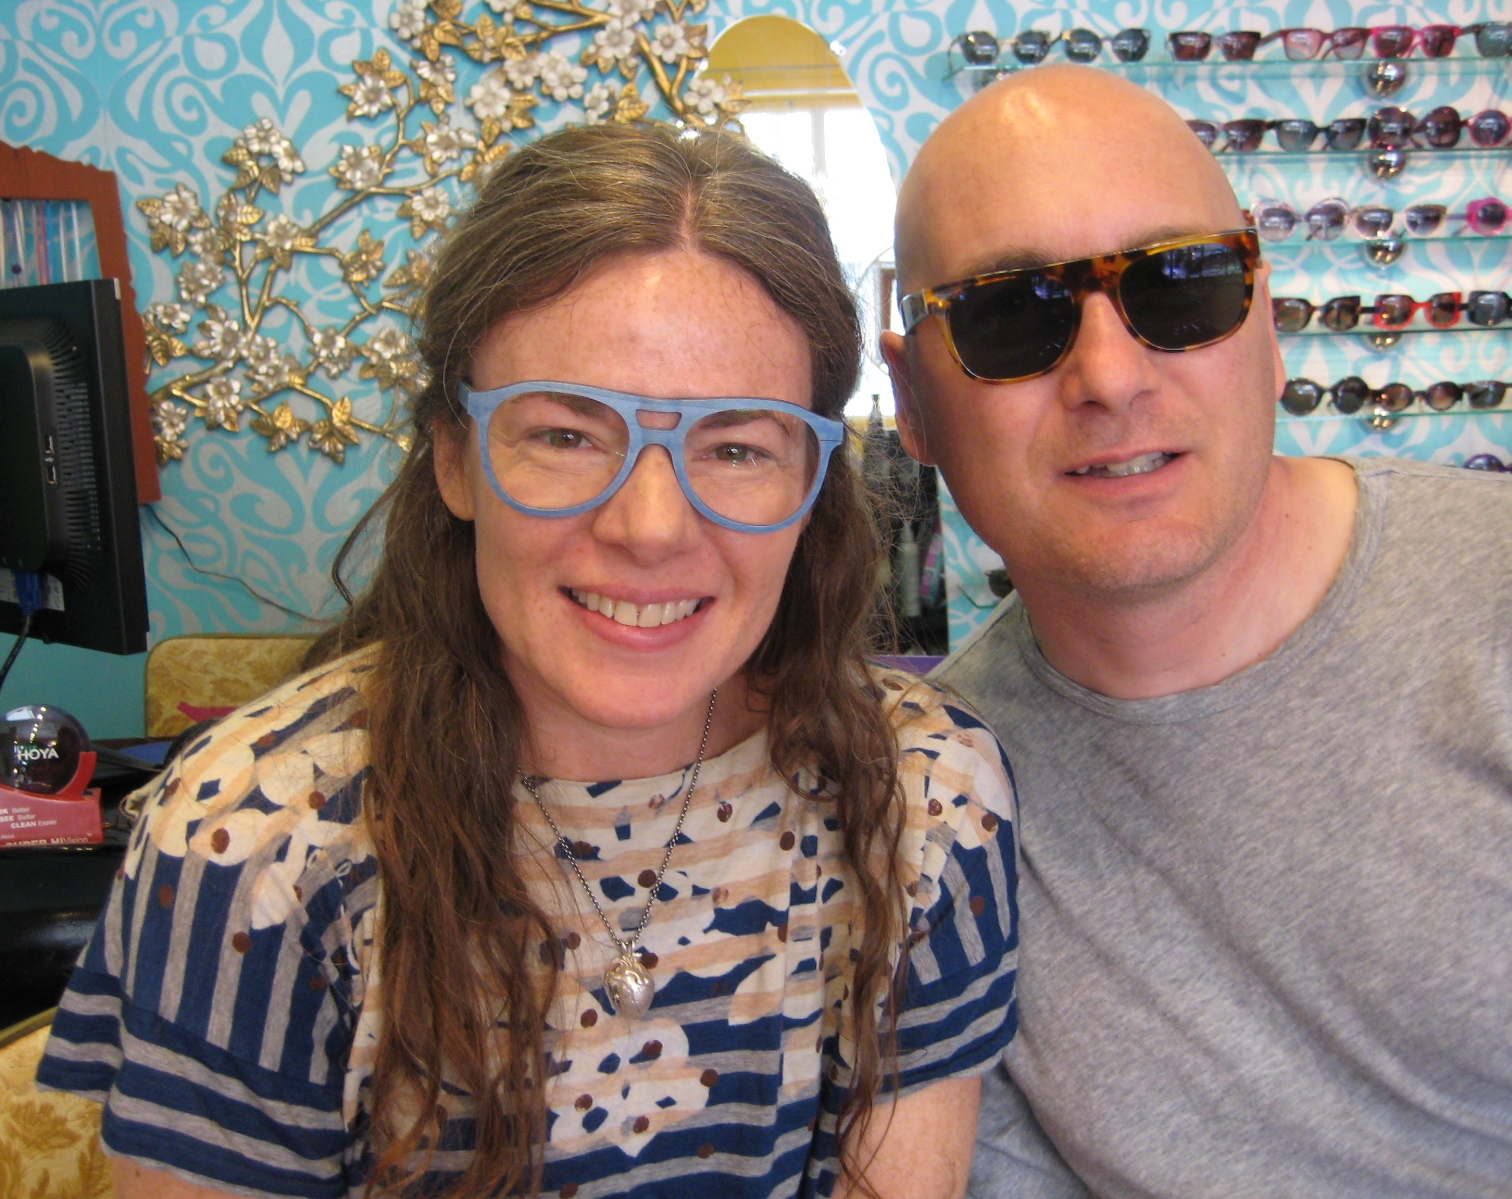 Lisa &amp; Frank in their new Feb31st and Super sunglasses!